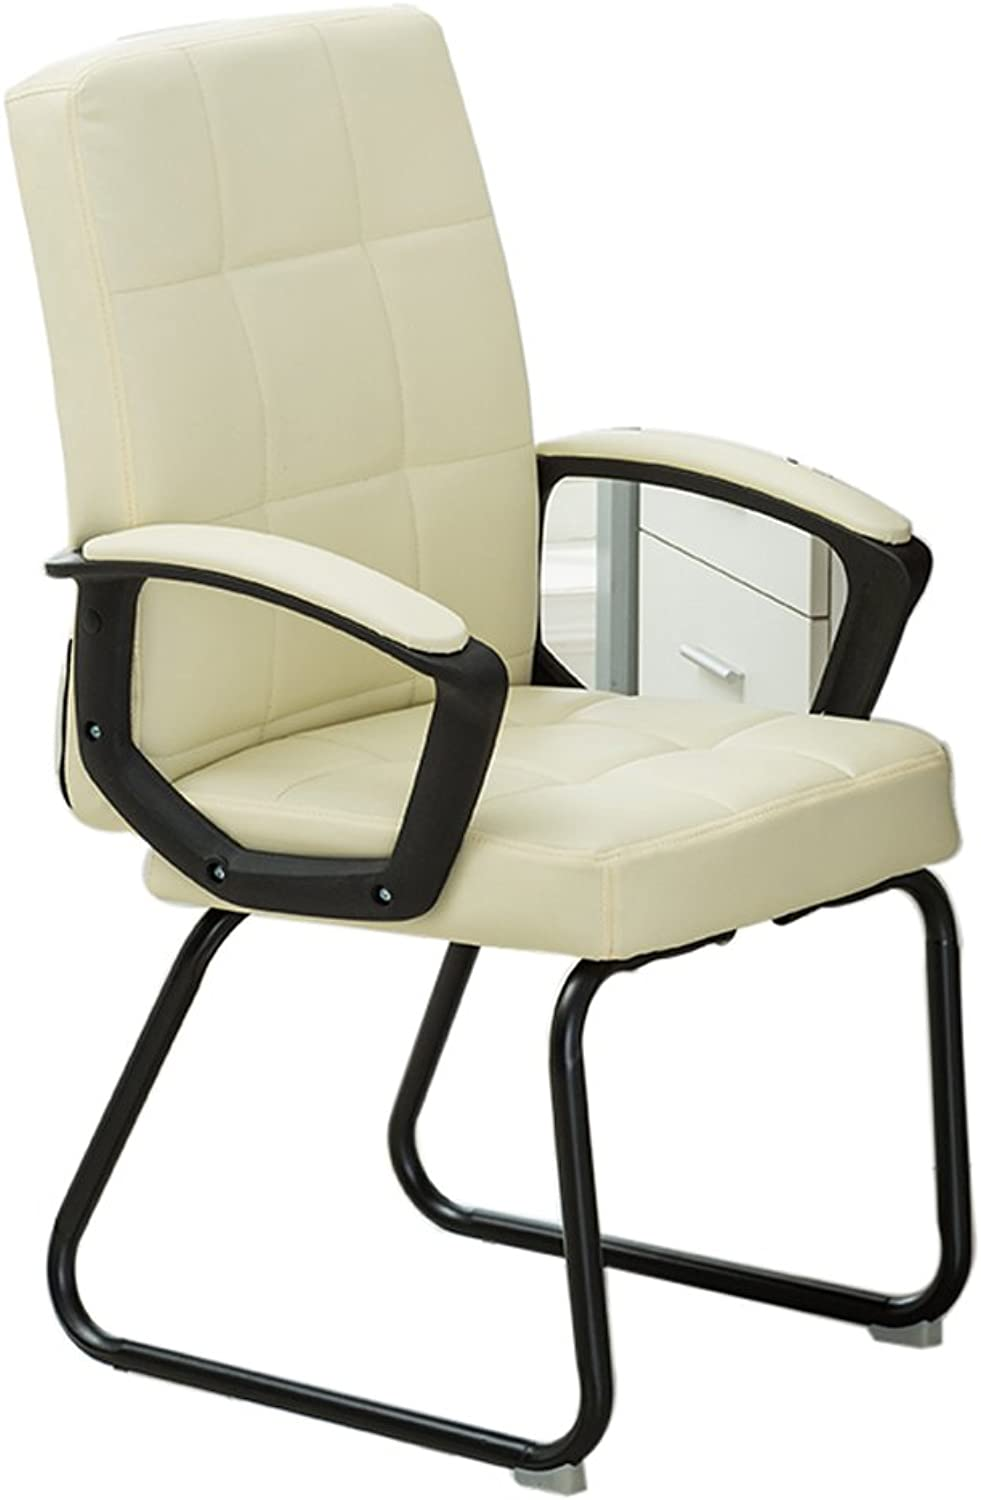 MENA UK Computer Chair Home Staff Office Chair Bow Conference Chair Student Bedroom Chair Simple Boss Chair (color   White, Size   A)